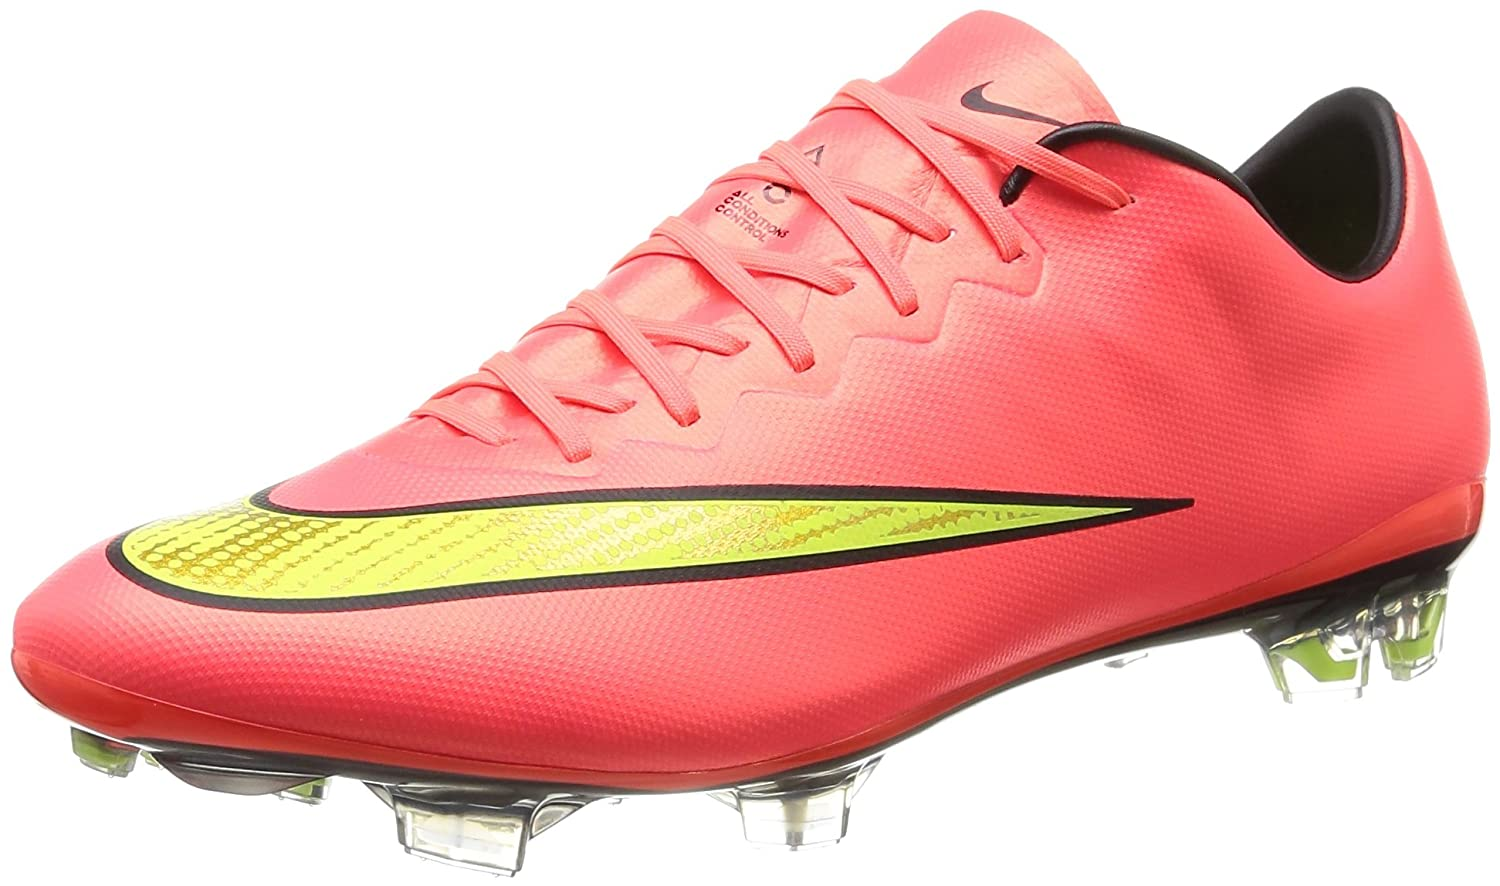 new products 10af3 eb7ab Amazon.com  Nike Mercurial Vapor X FG Mens Soccer Boots  Soc